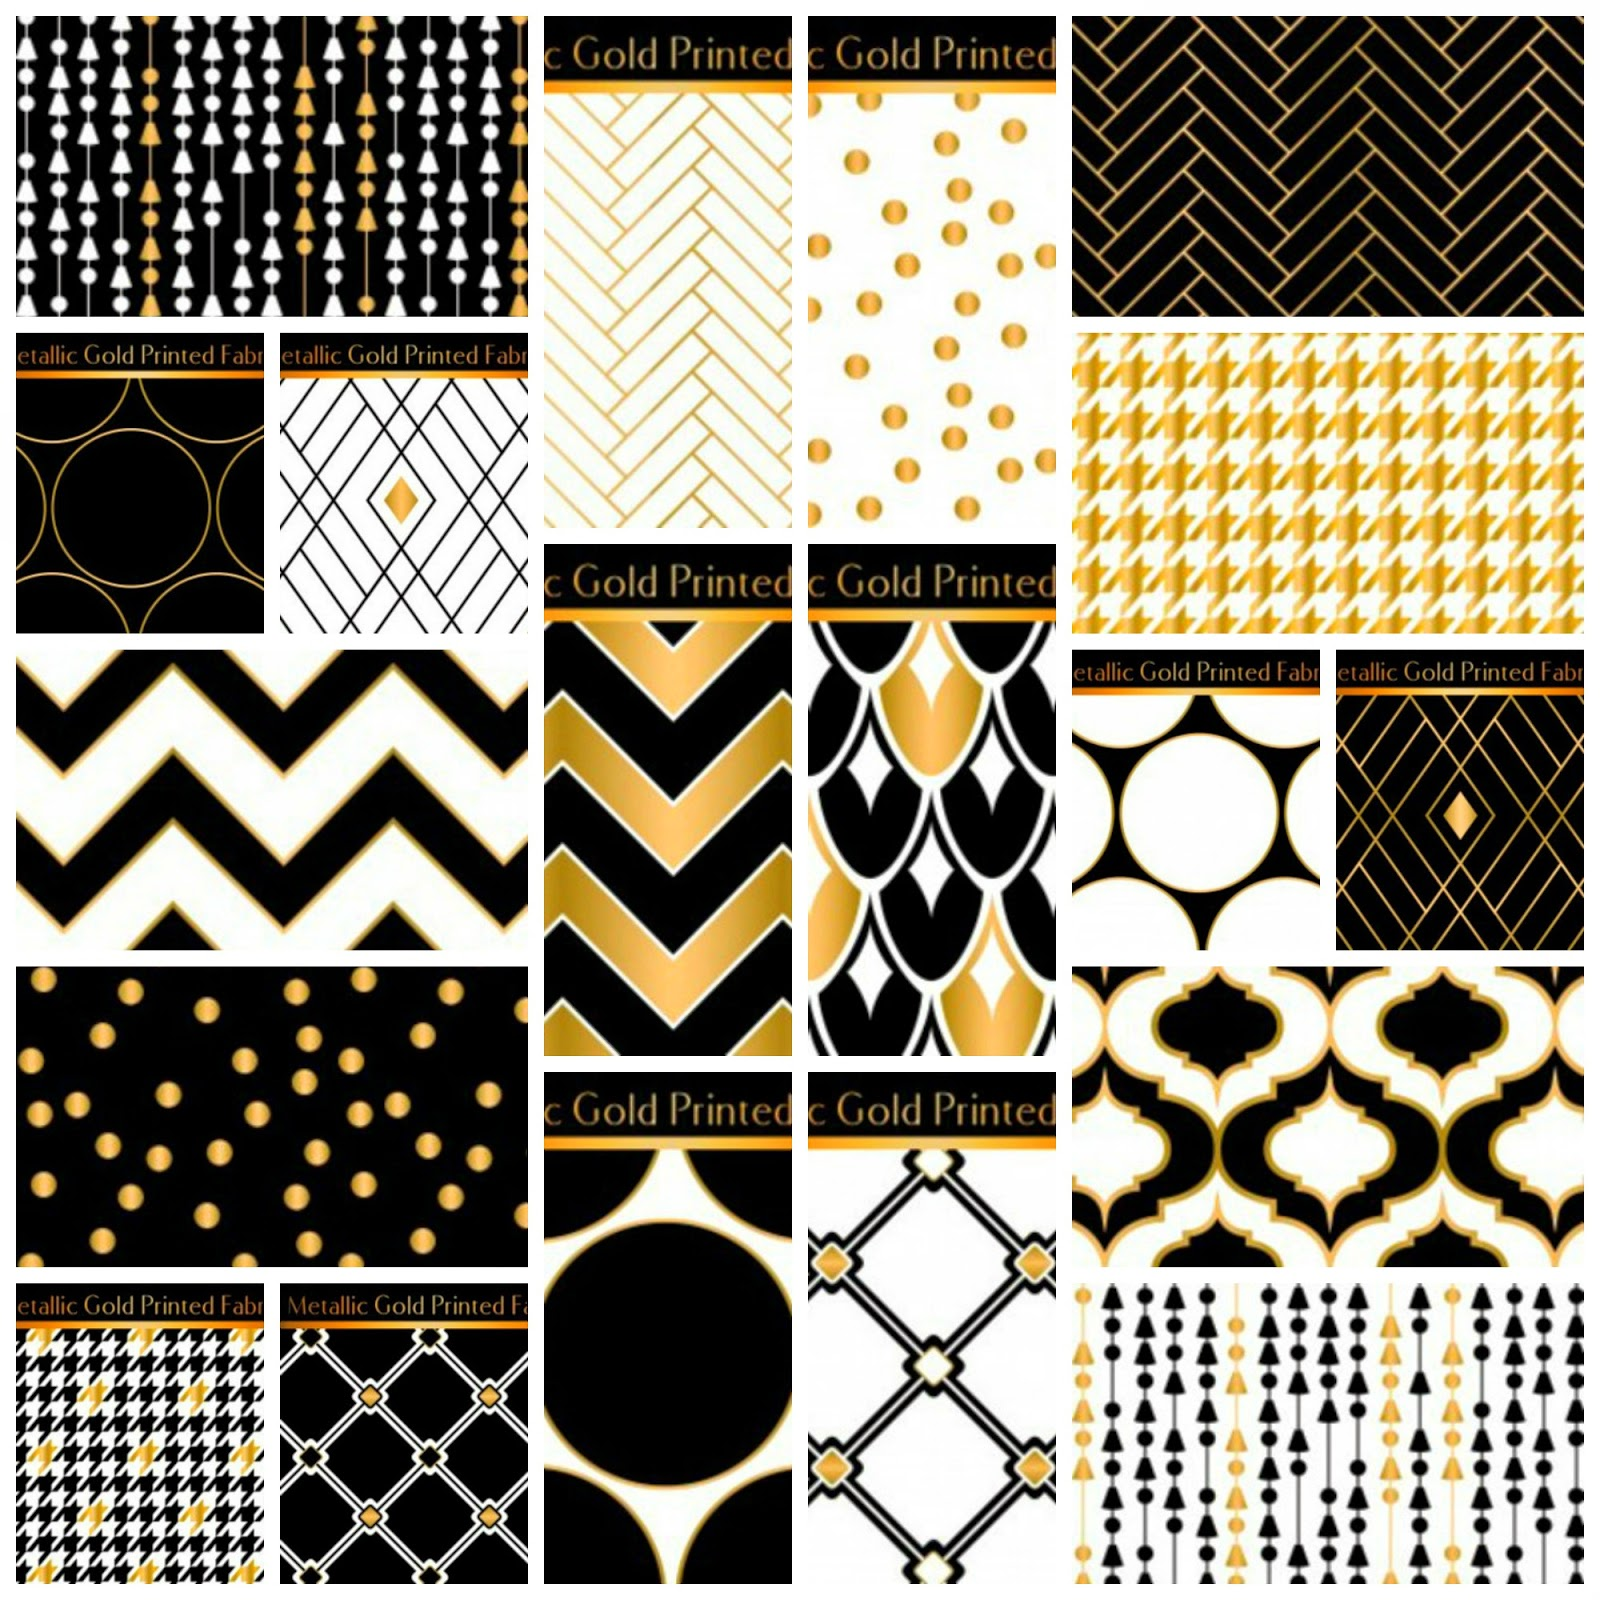 a5c7f5d5ceb549 Bobbie Lou Fabrics Discount and Giveaway - Diary of a Quilter - a ...